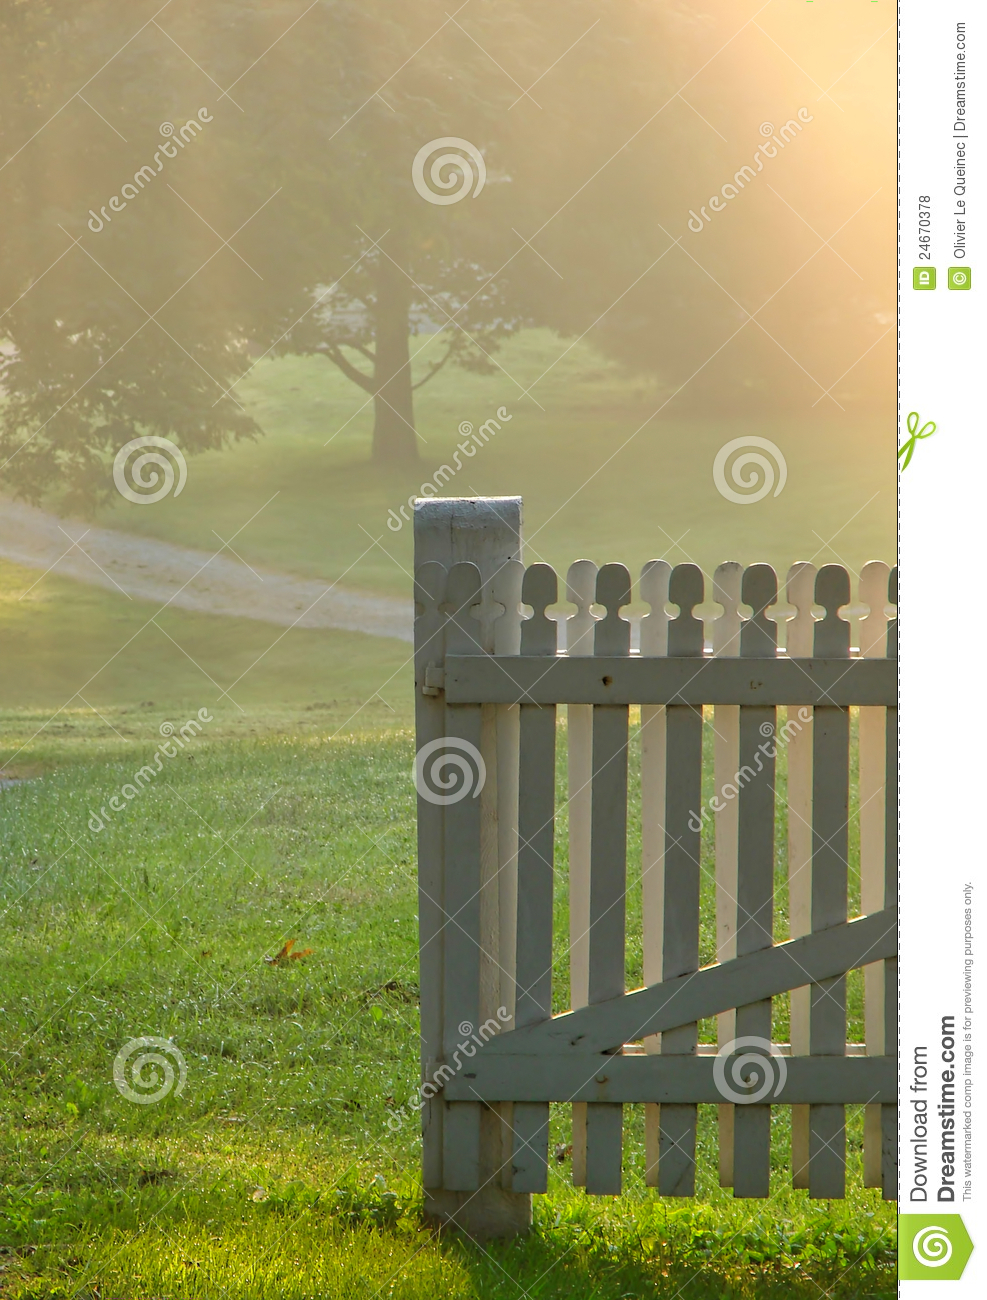 Garden Gate in Morning Fog over Country Meadow